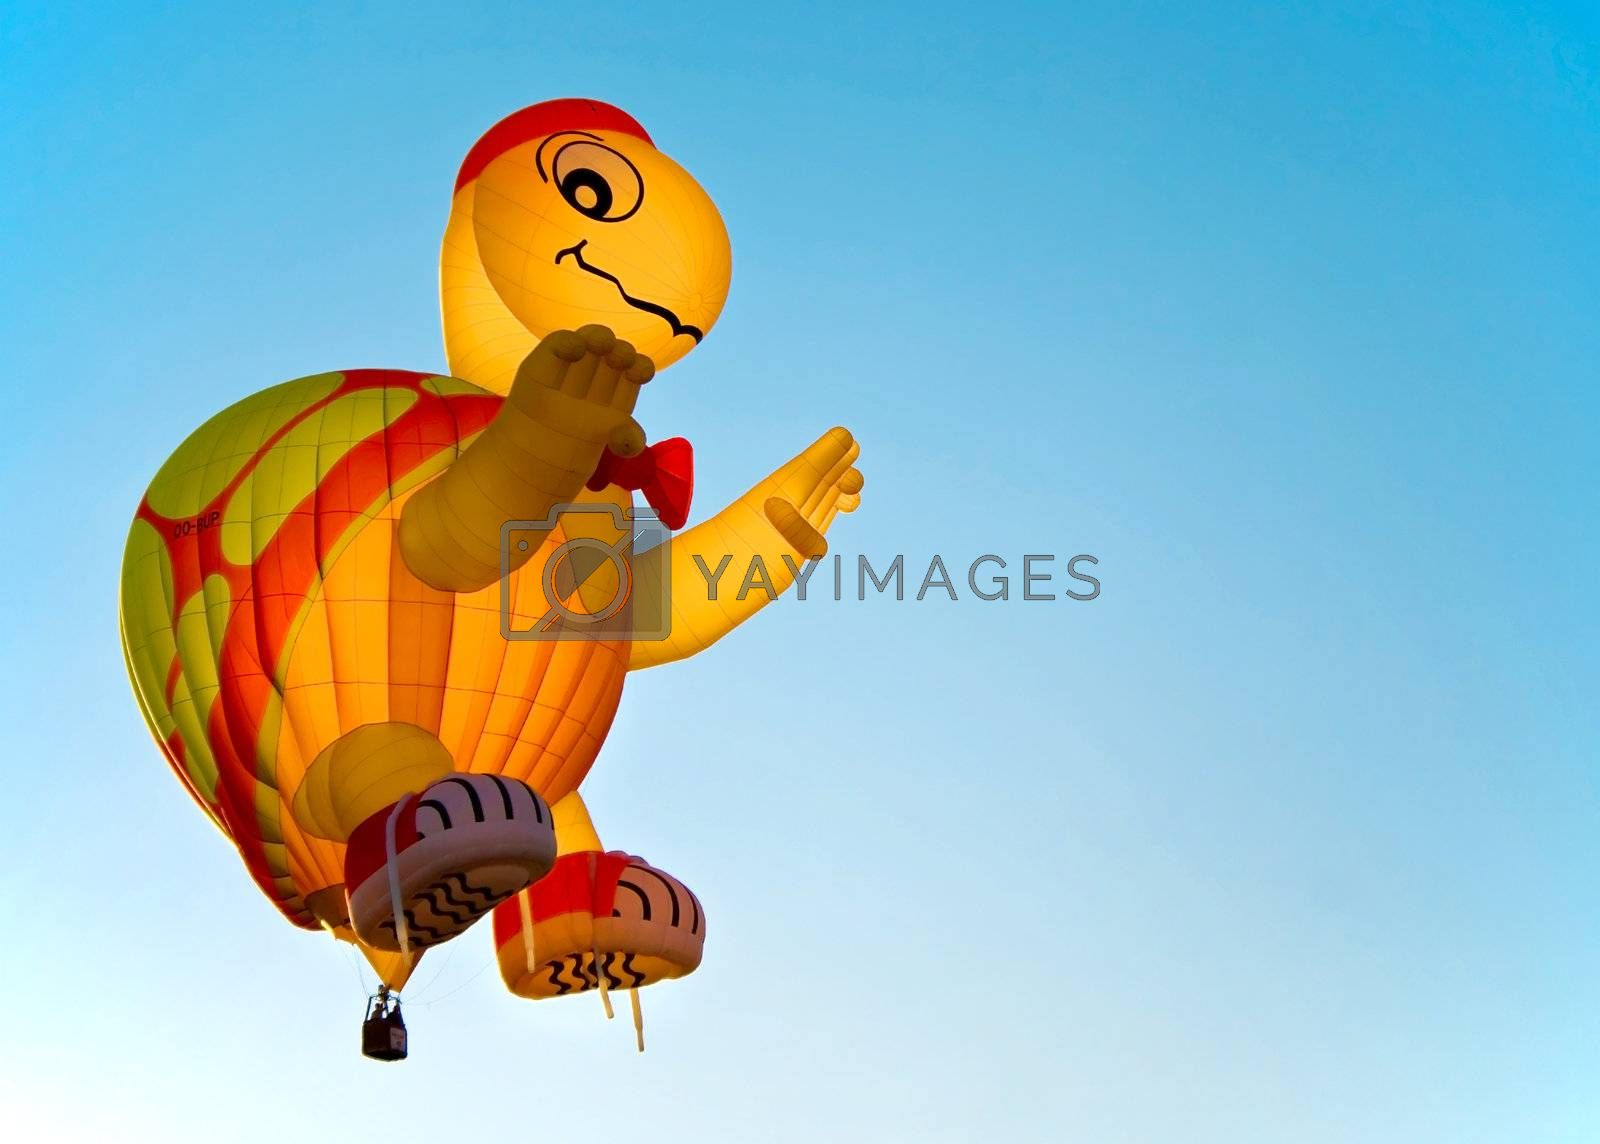 A turtle air balloon against a clear blue sky at the festival.